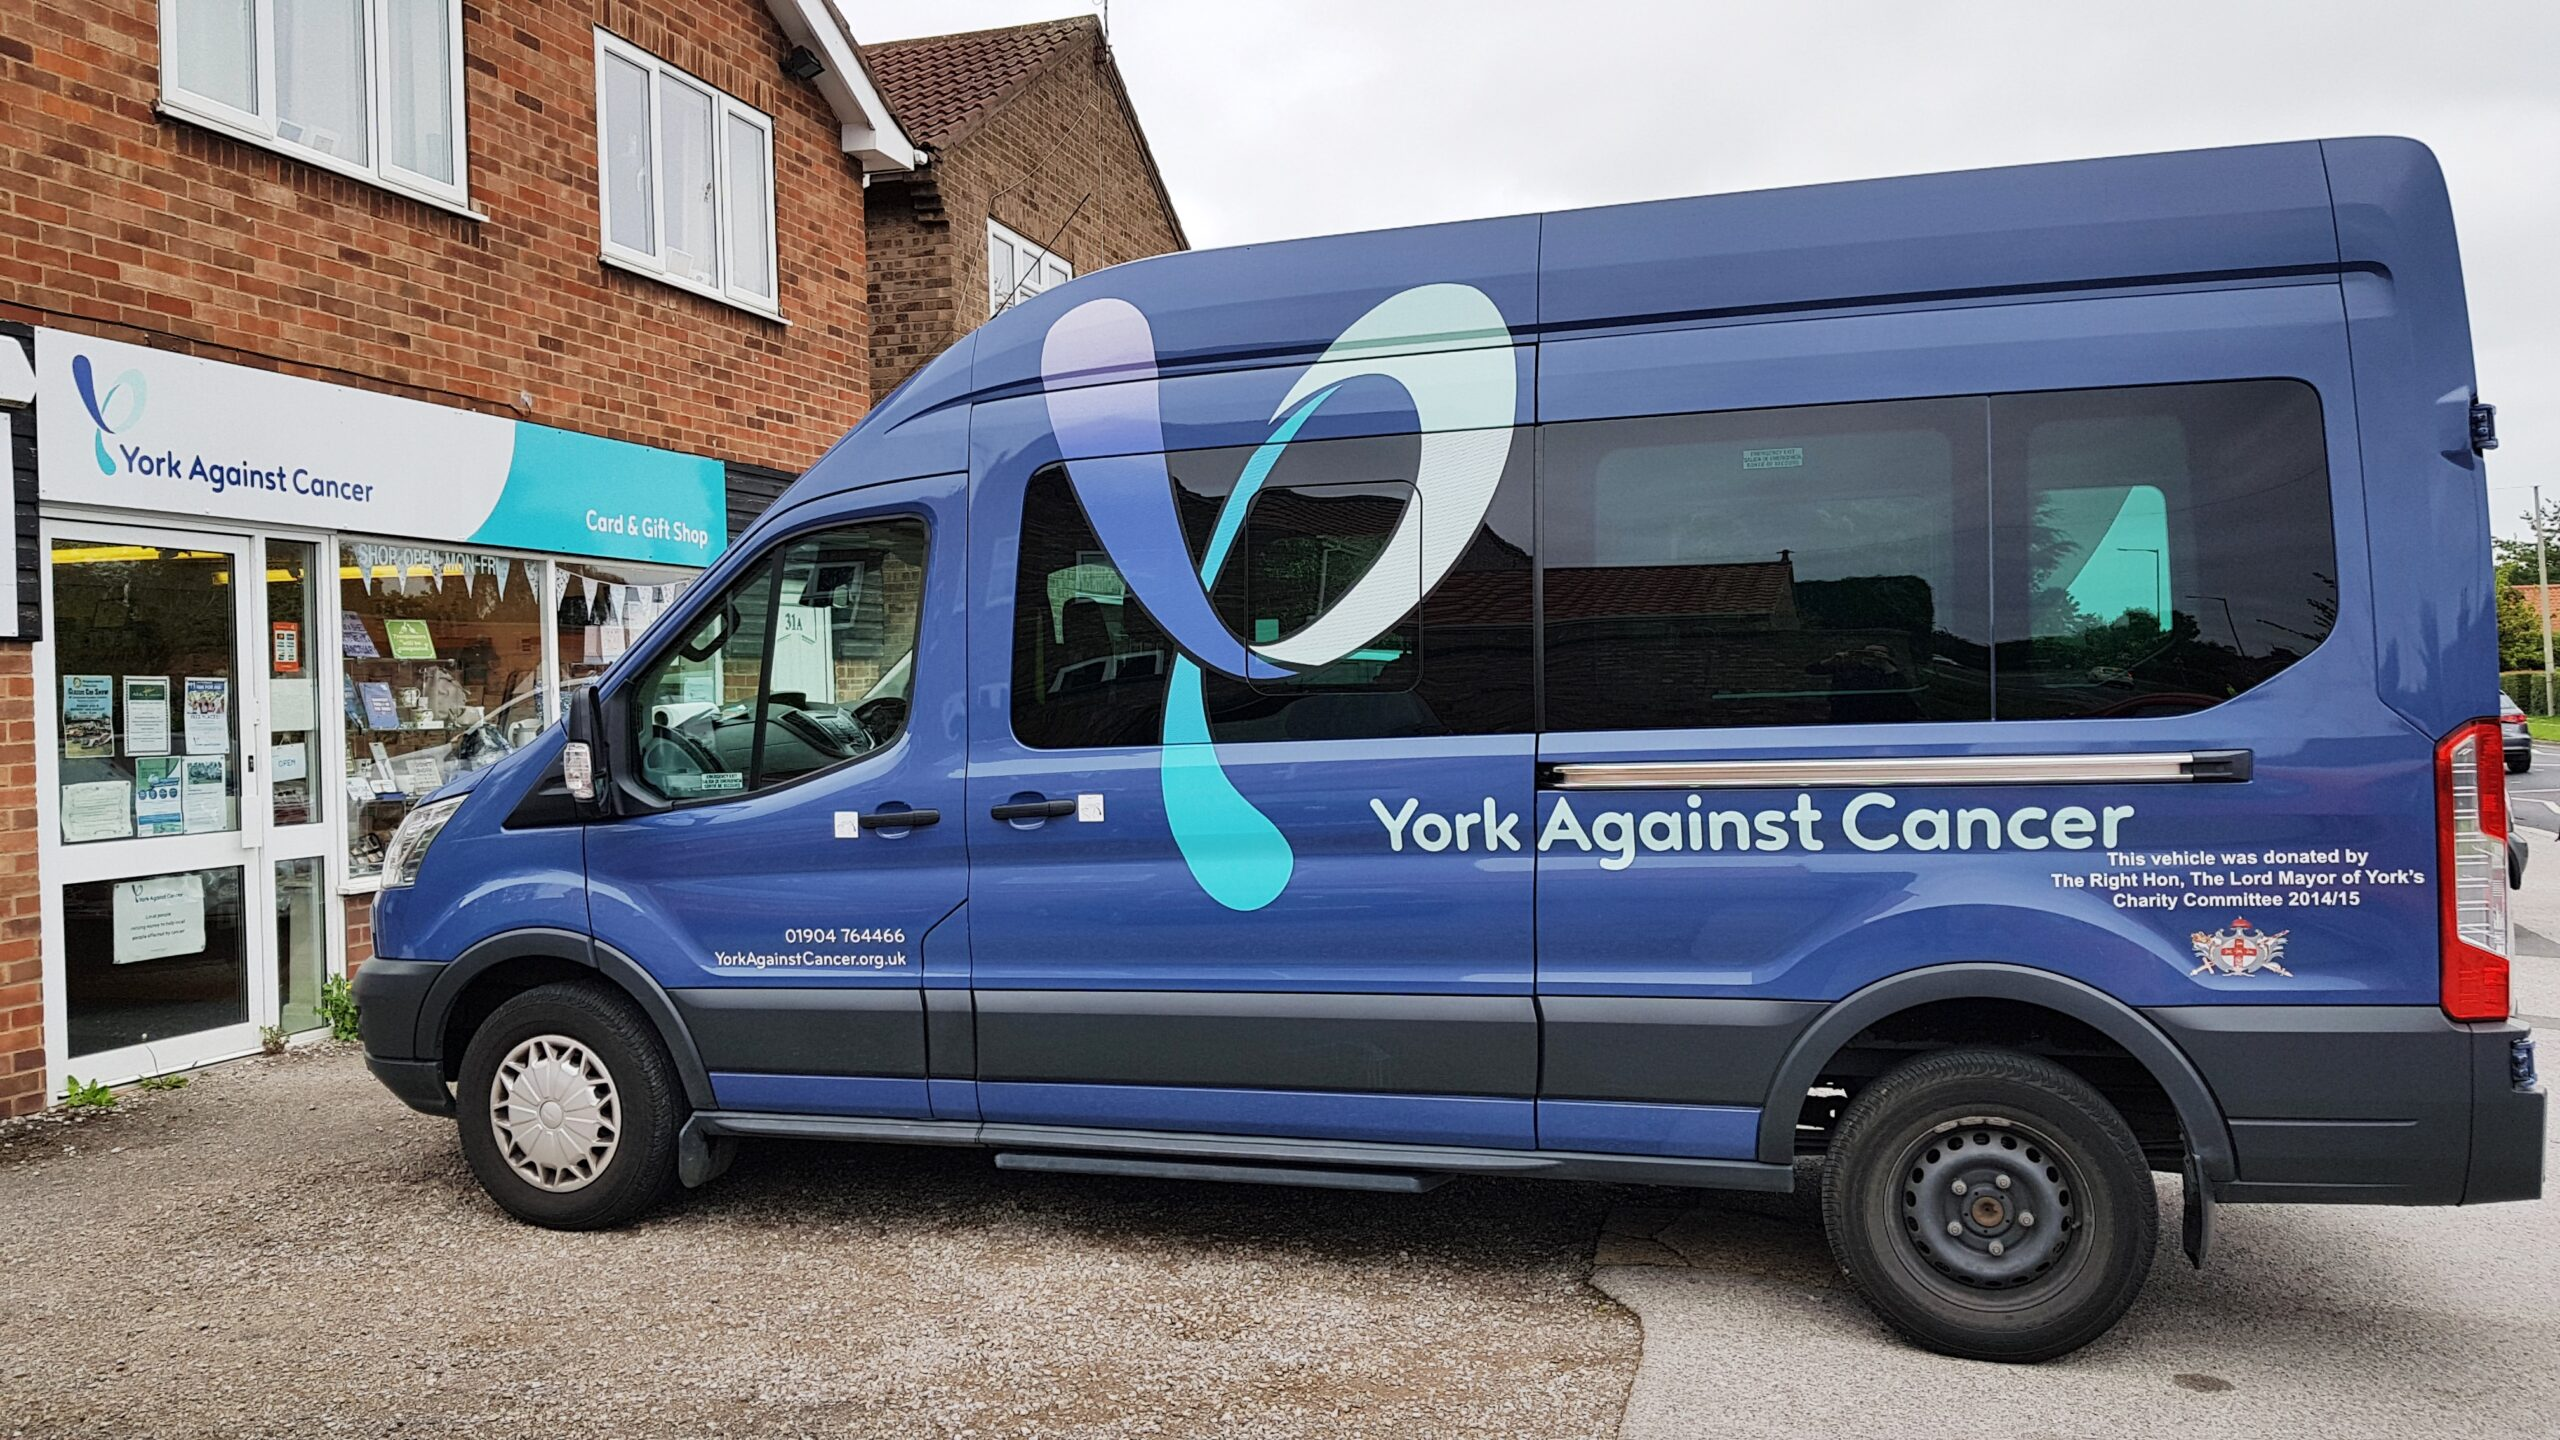 The York Against Cancer minibus at the shop.